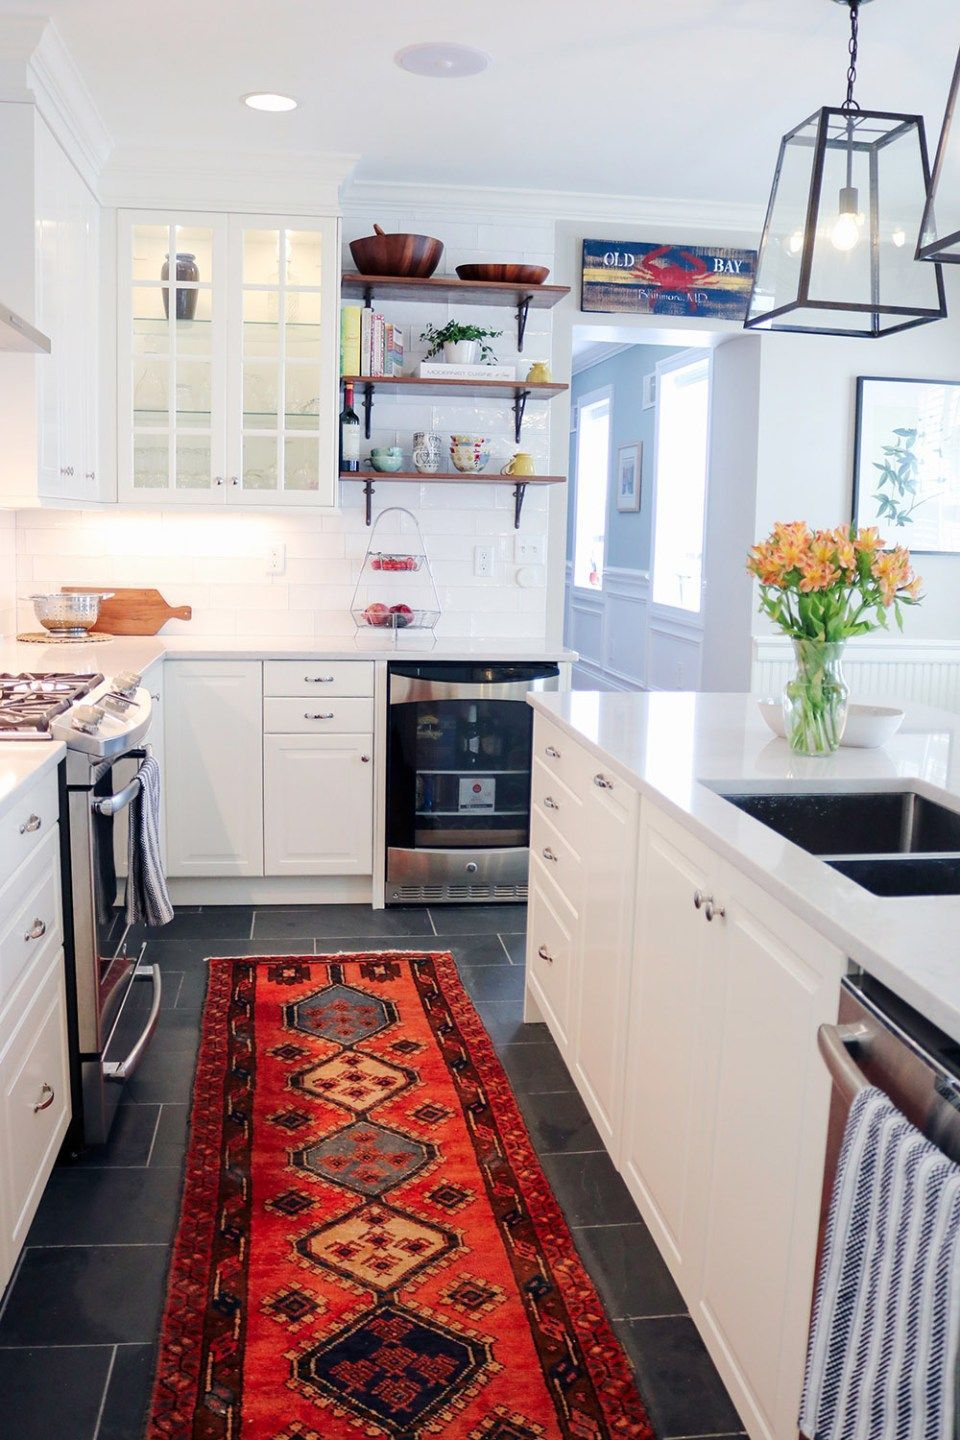 Fells Point Baltimore White IKEA Kitchen Remodel by